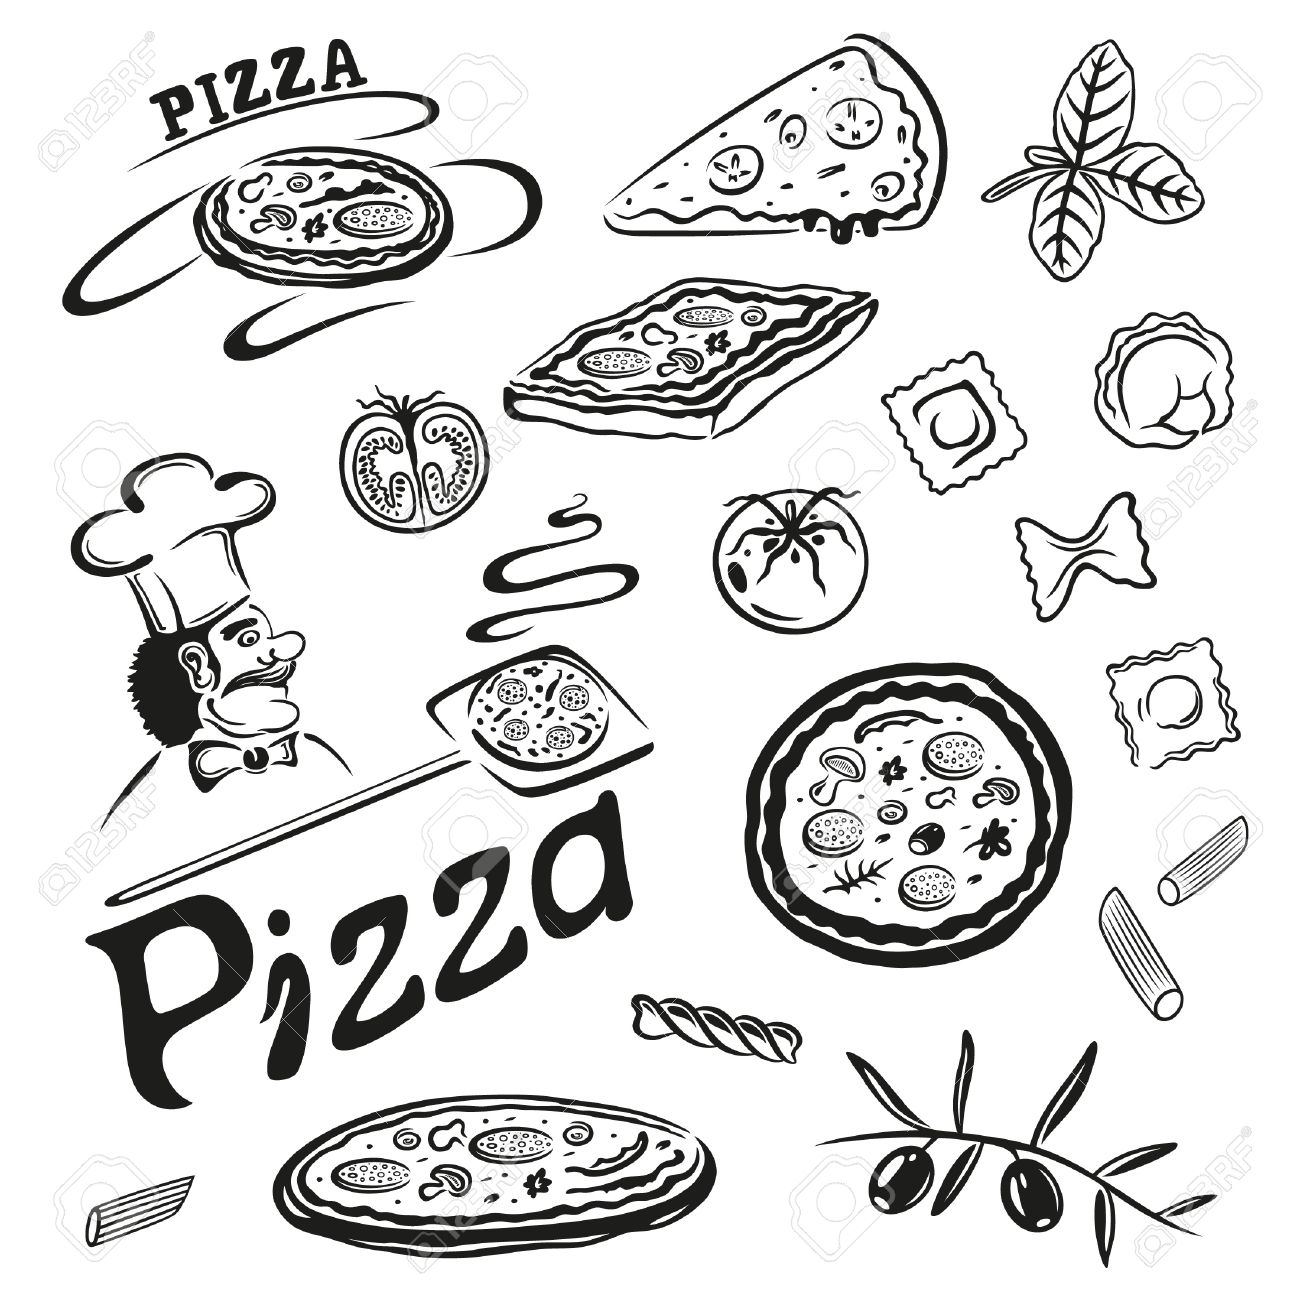 1300x1300 Italian Food, Pizza, Pasta, Black Vector Set Royalty Free Cliparts